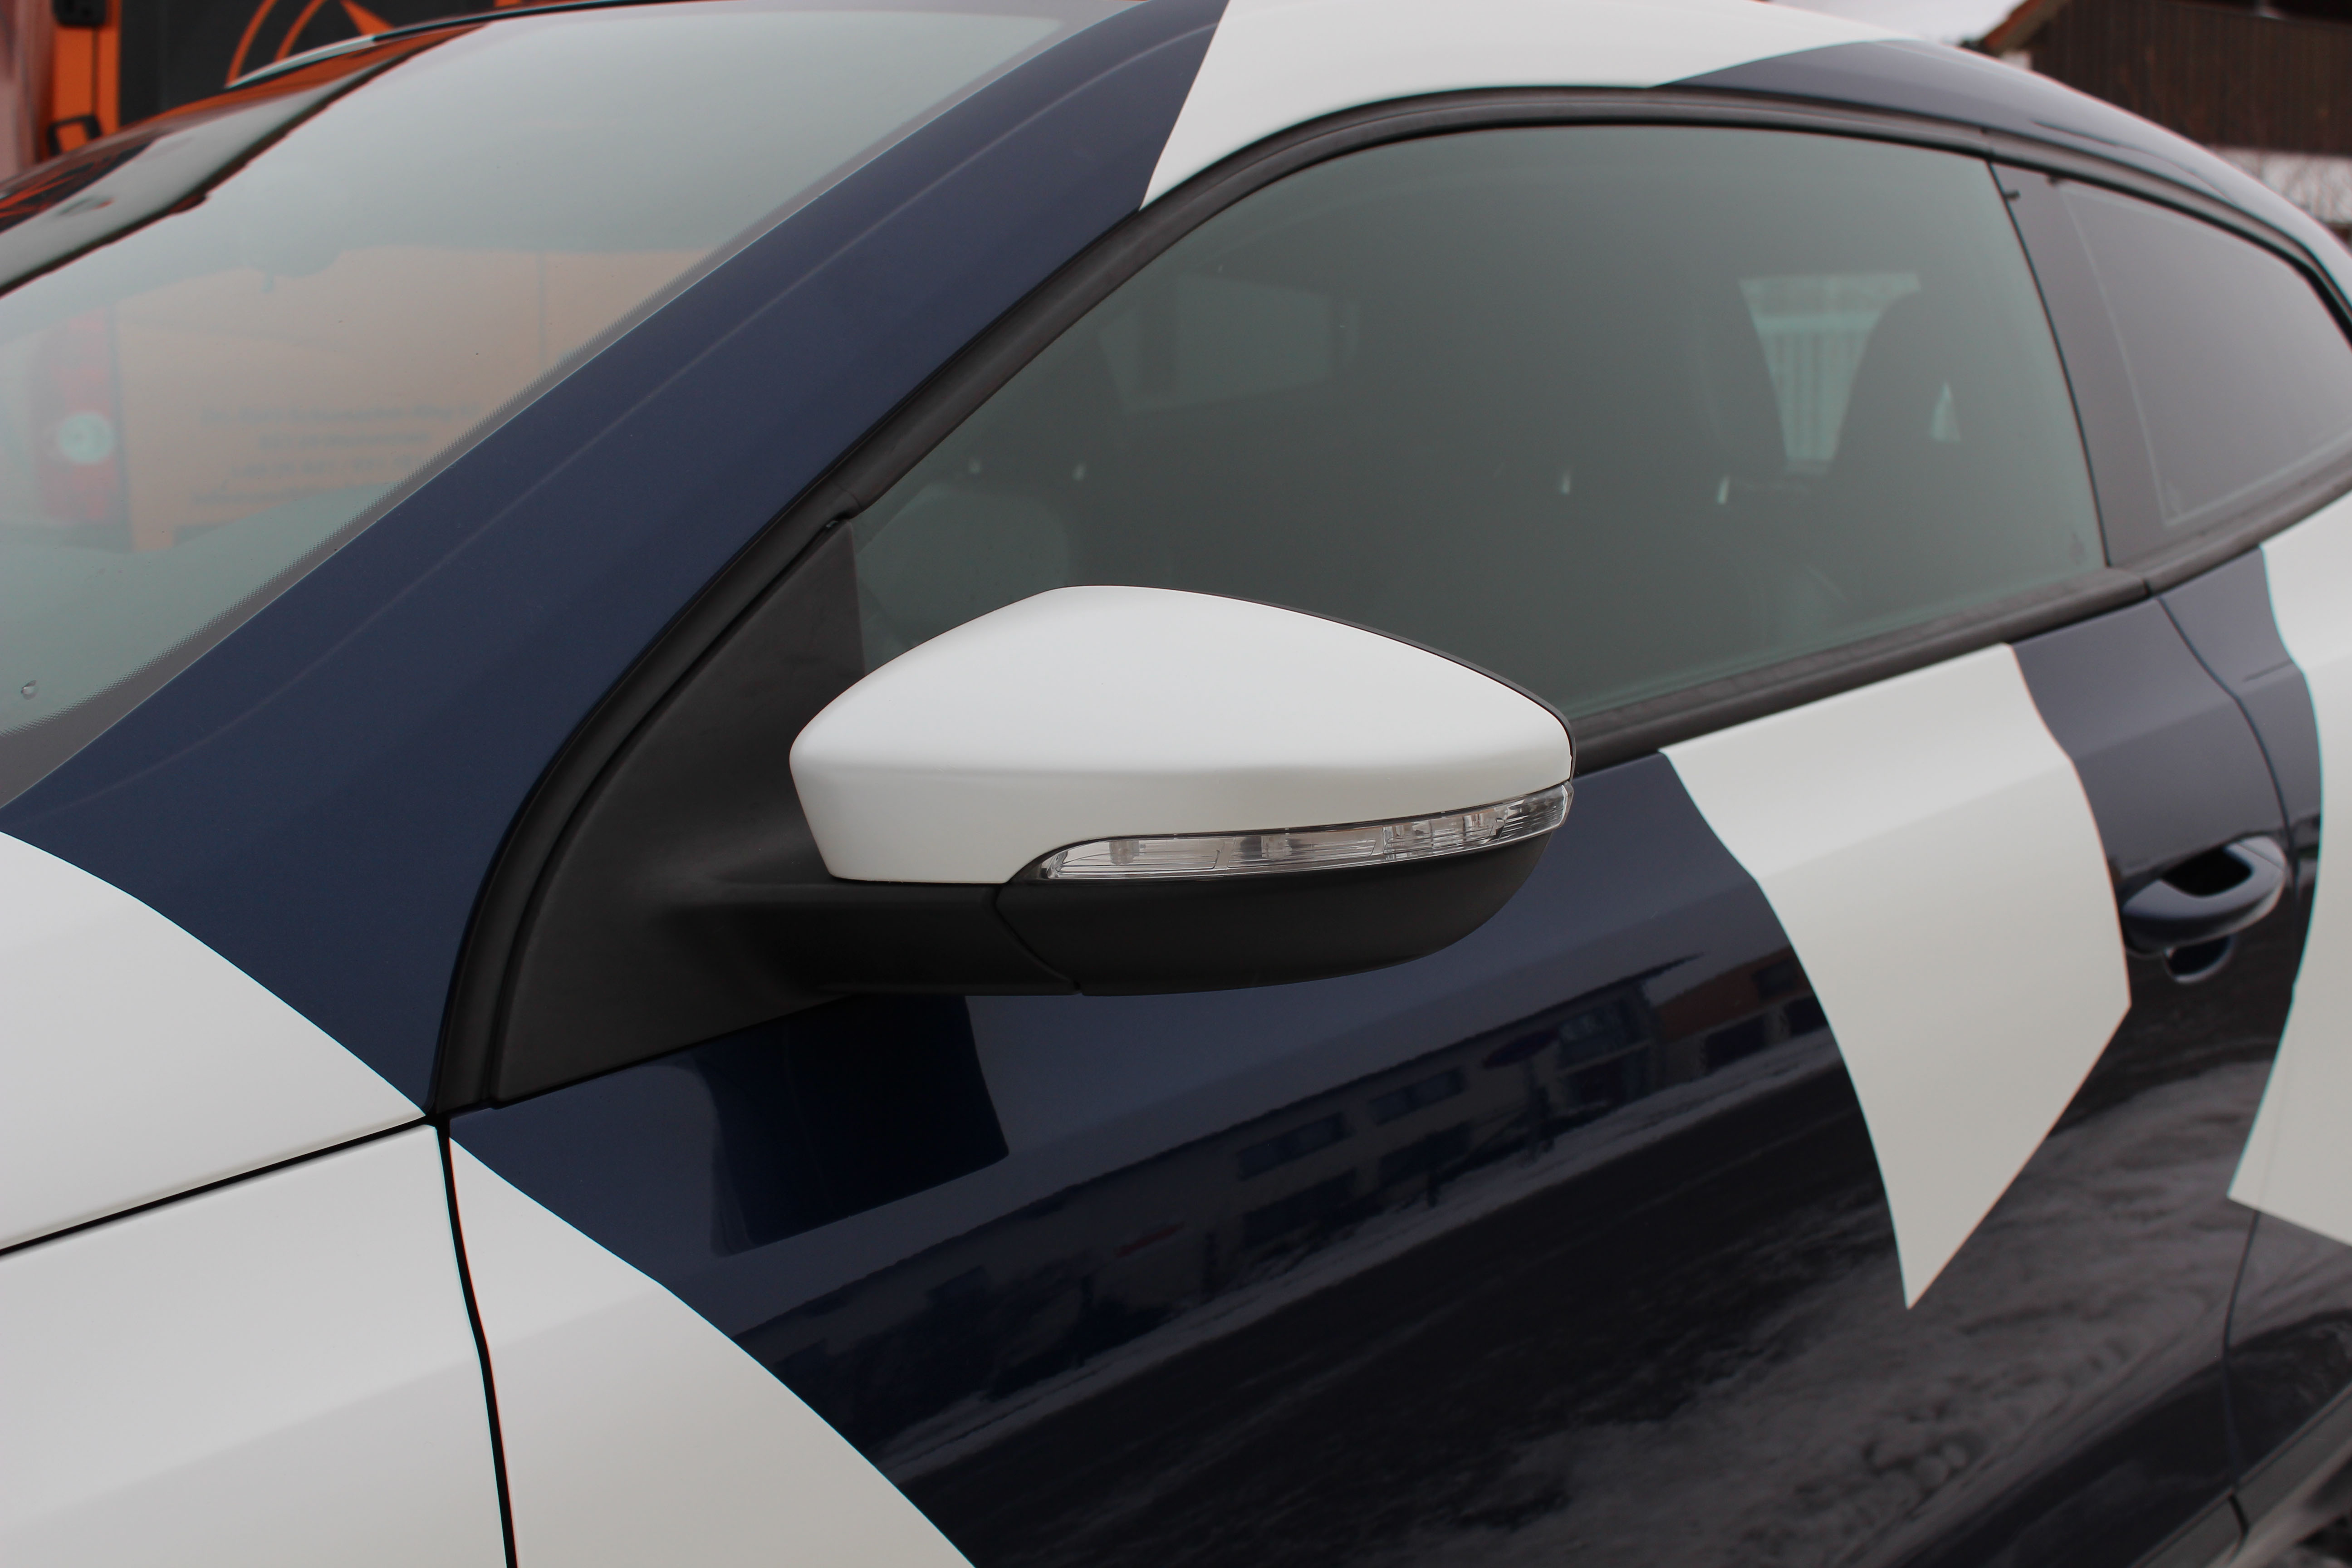 Carwrapping_scirocco_camouflage3